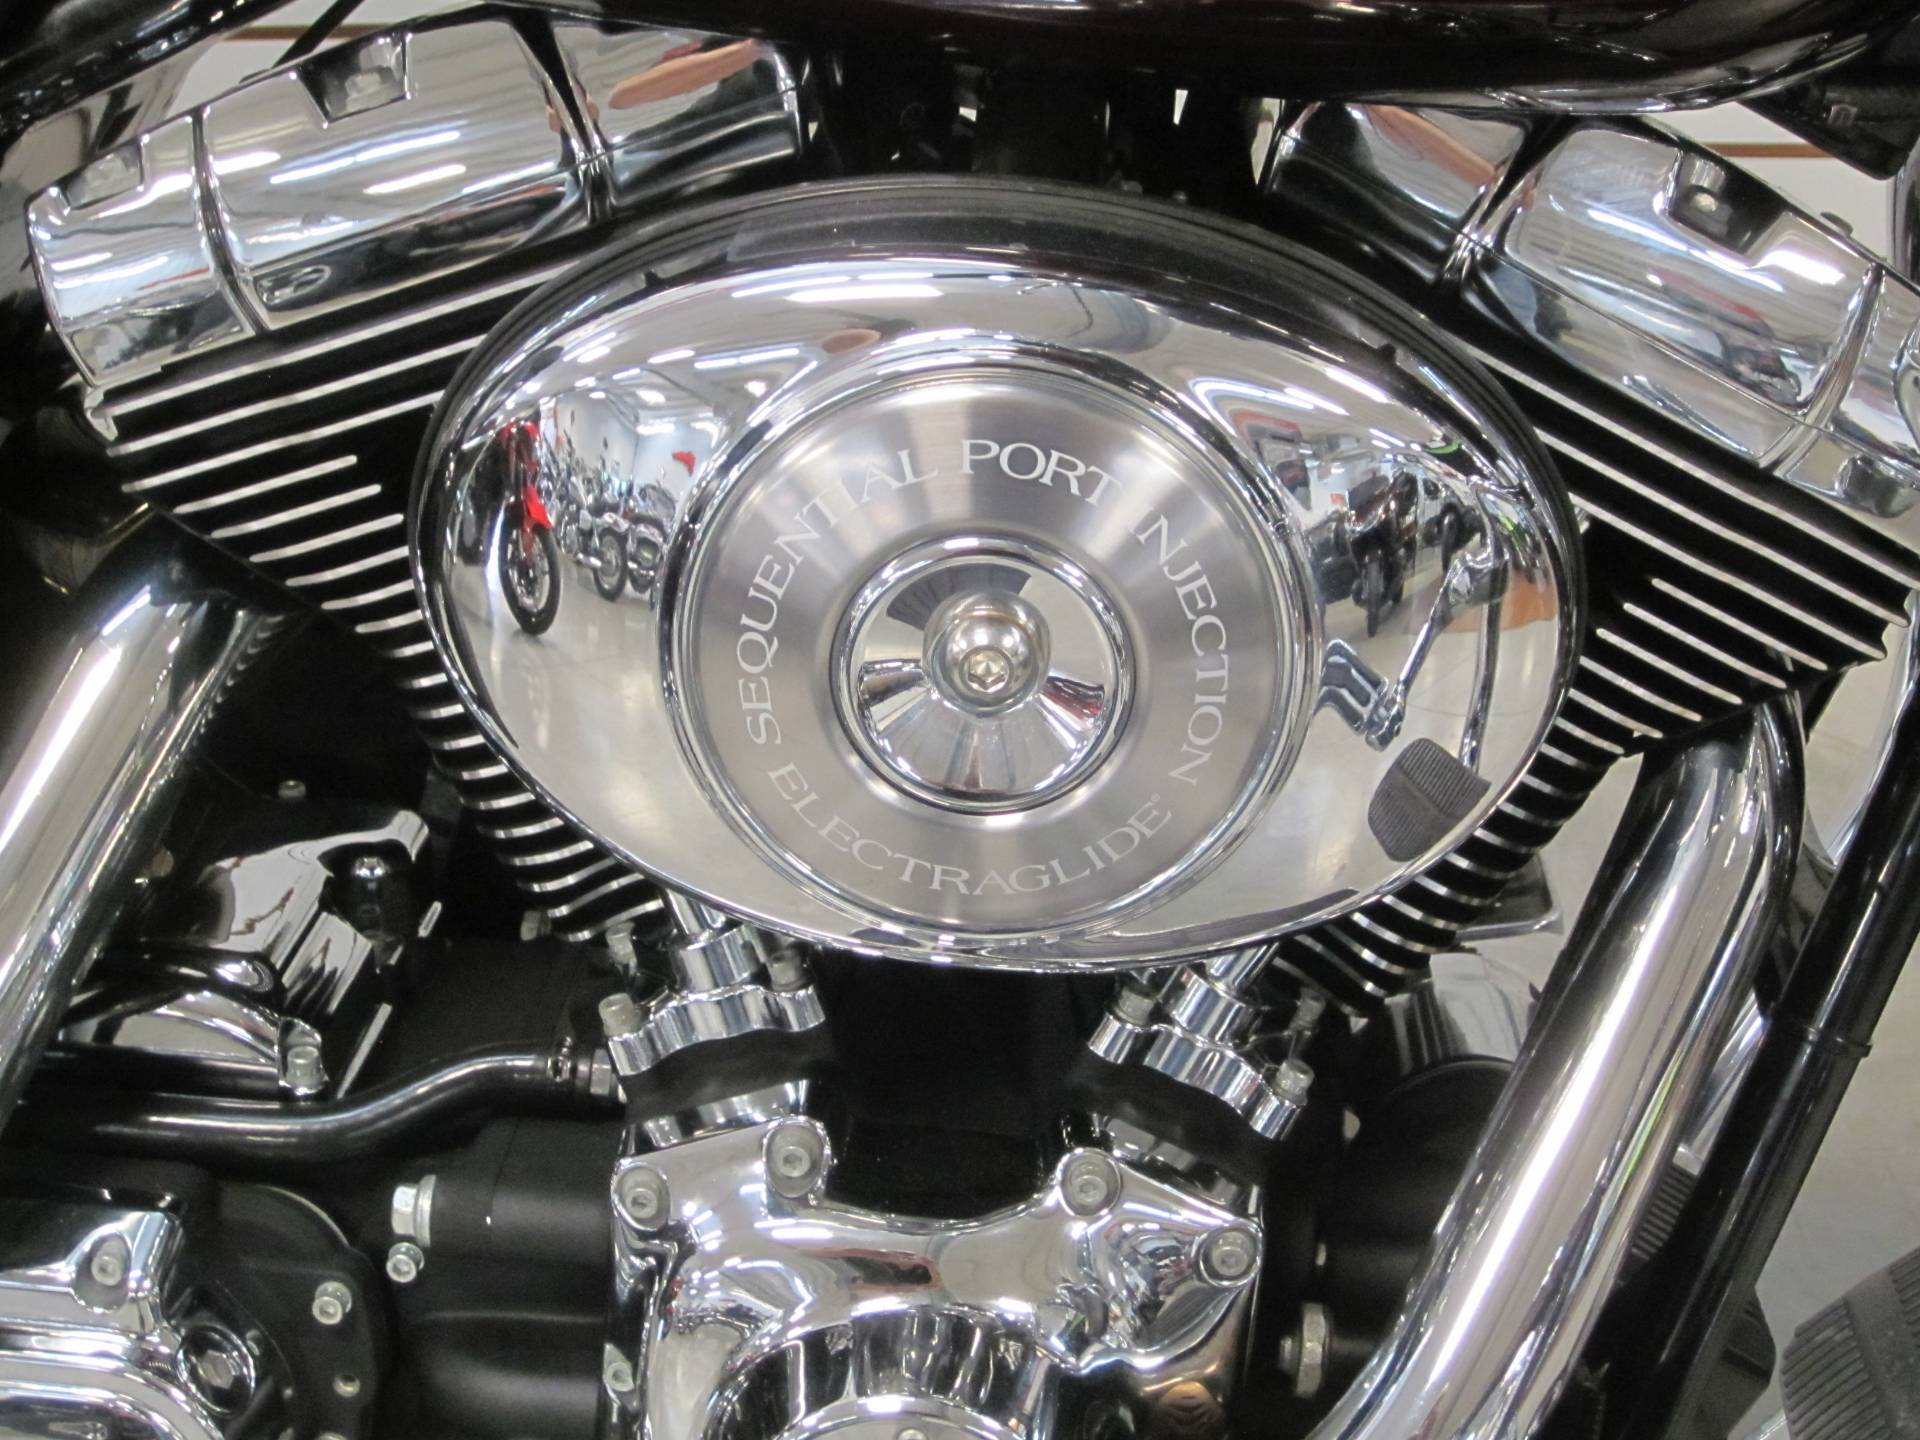 2005 Harley Davidson Ultra Glide Classic in Lima, Ohio - Photo 4